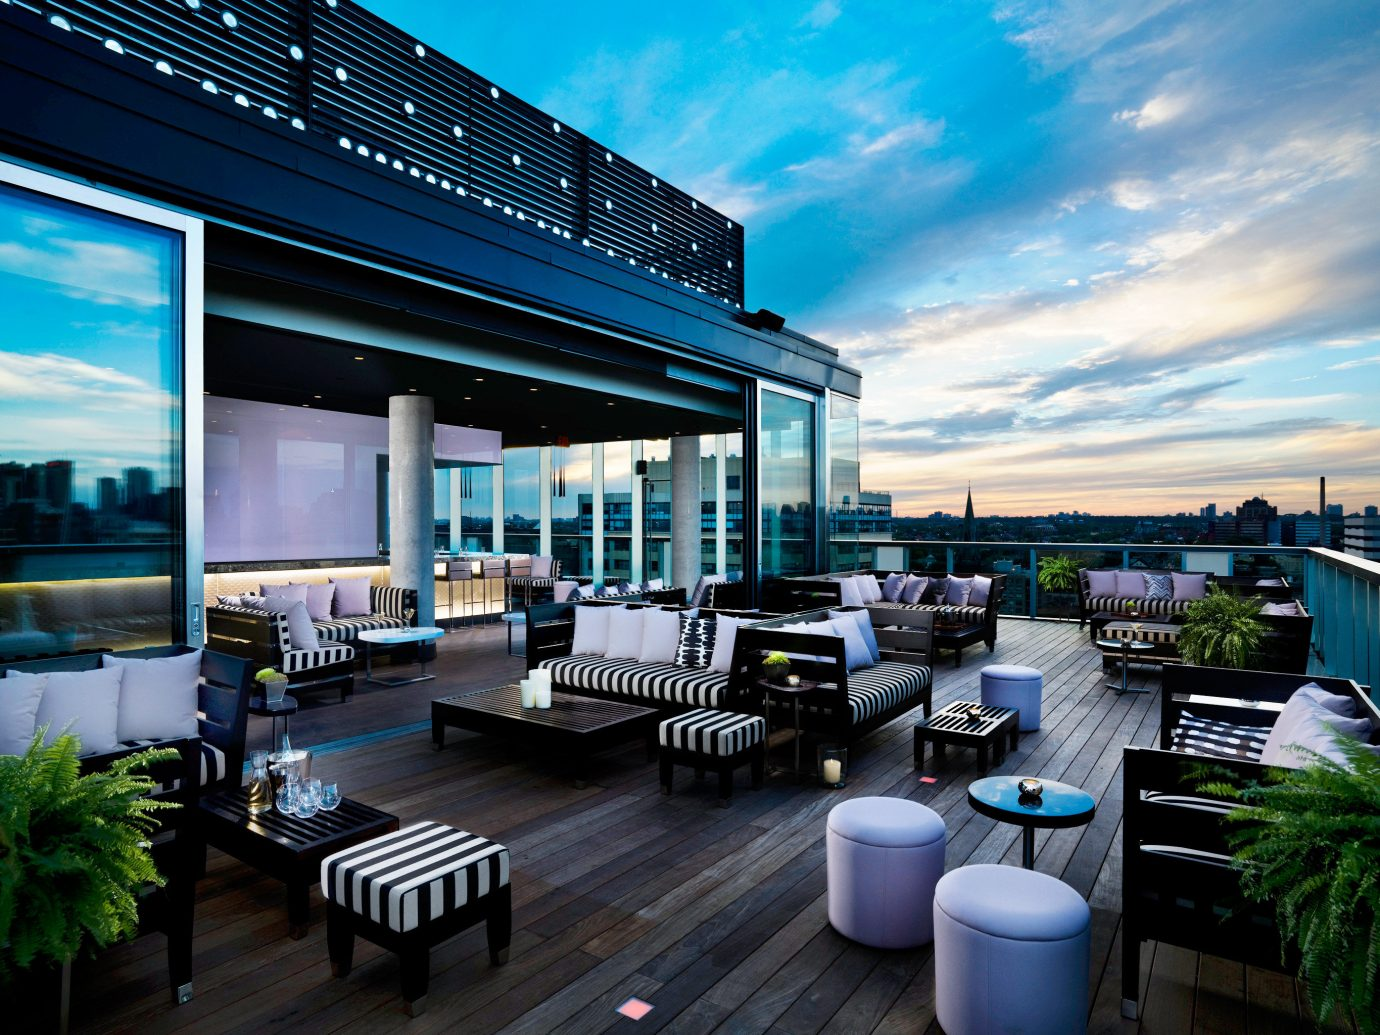 Bar City Hip Jetsetter Guides Lounge Modern Patio Pool Romance Rooftop Scenic views Trip Ideas sky outdoor condominium property Architecture real estate home interior design headquarters estate facade Design professional convention center window covering furniture